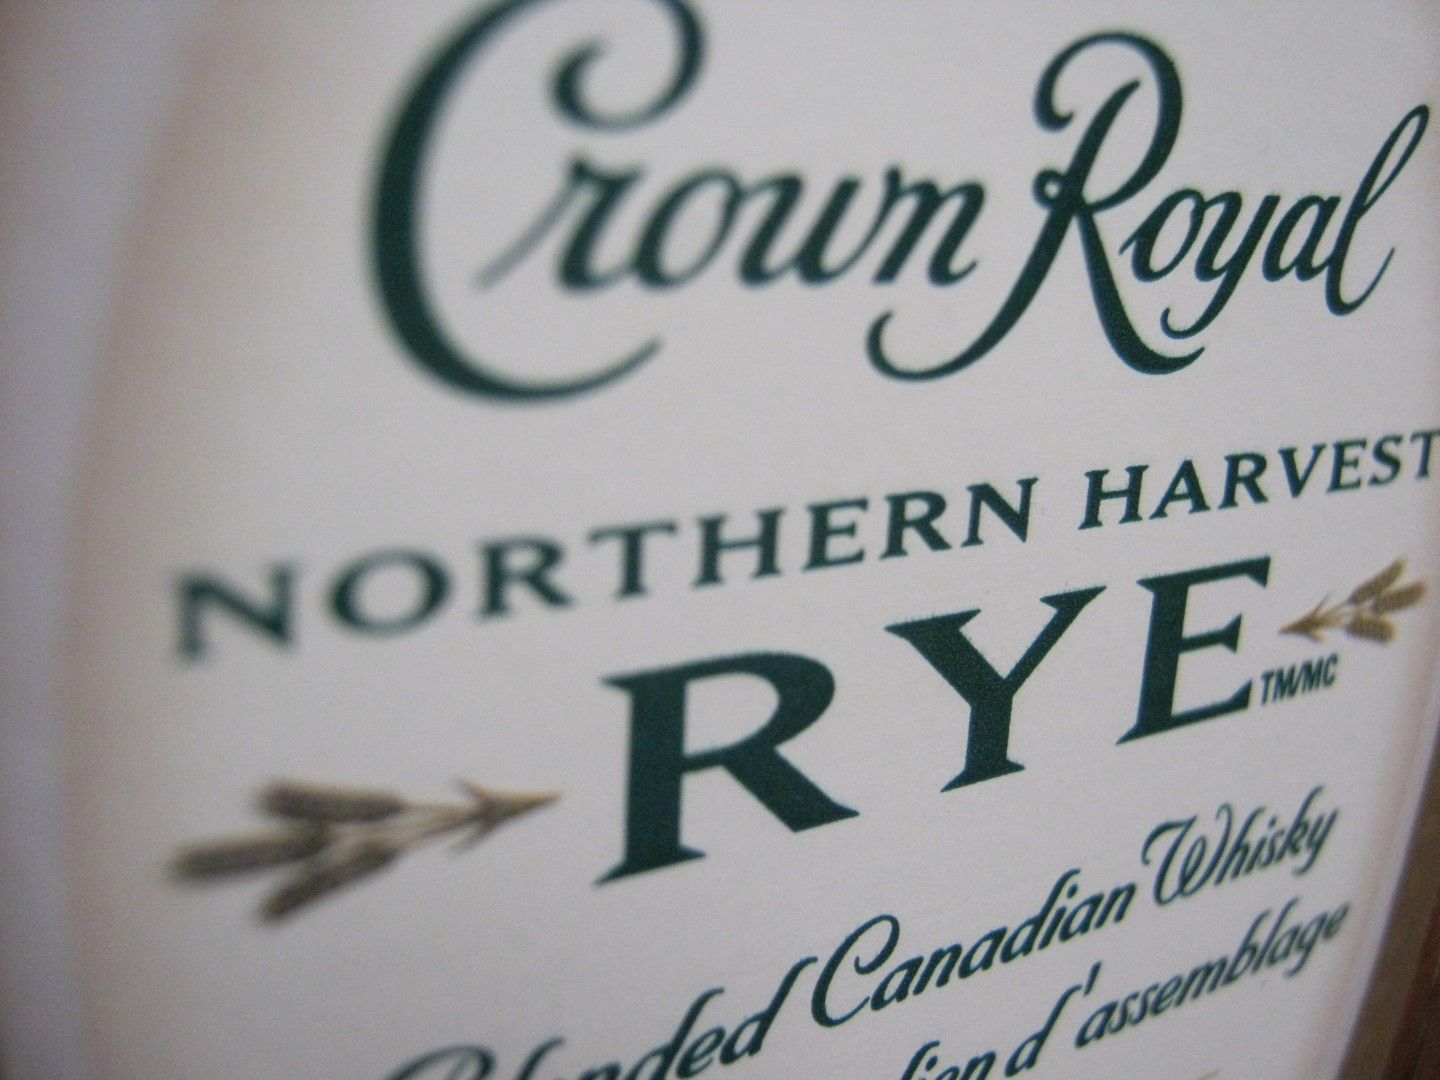 Crown Royal Northern Harvest.jpg